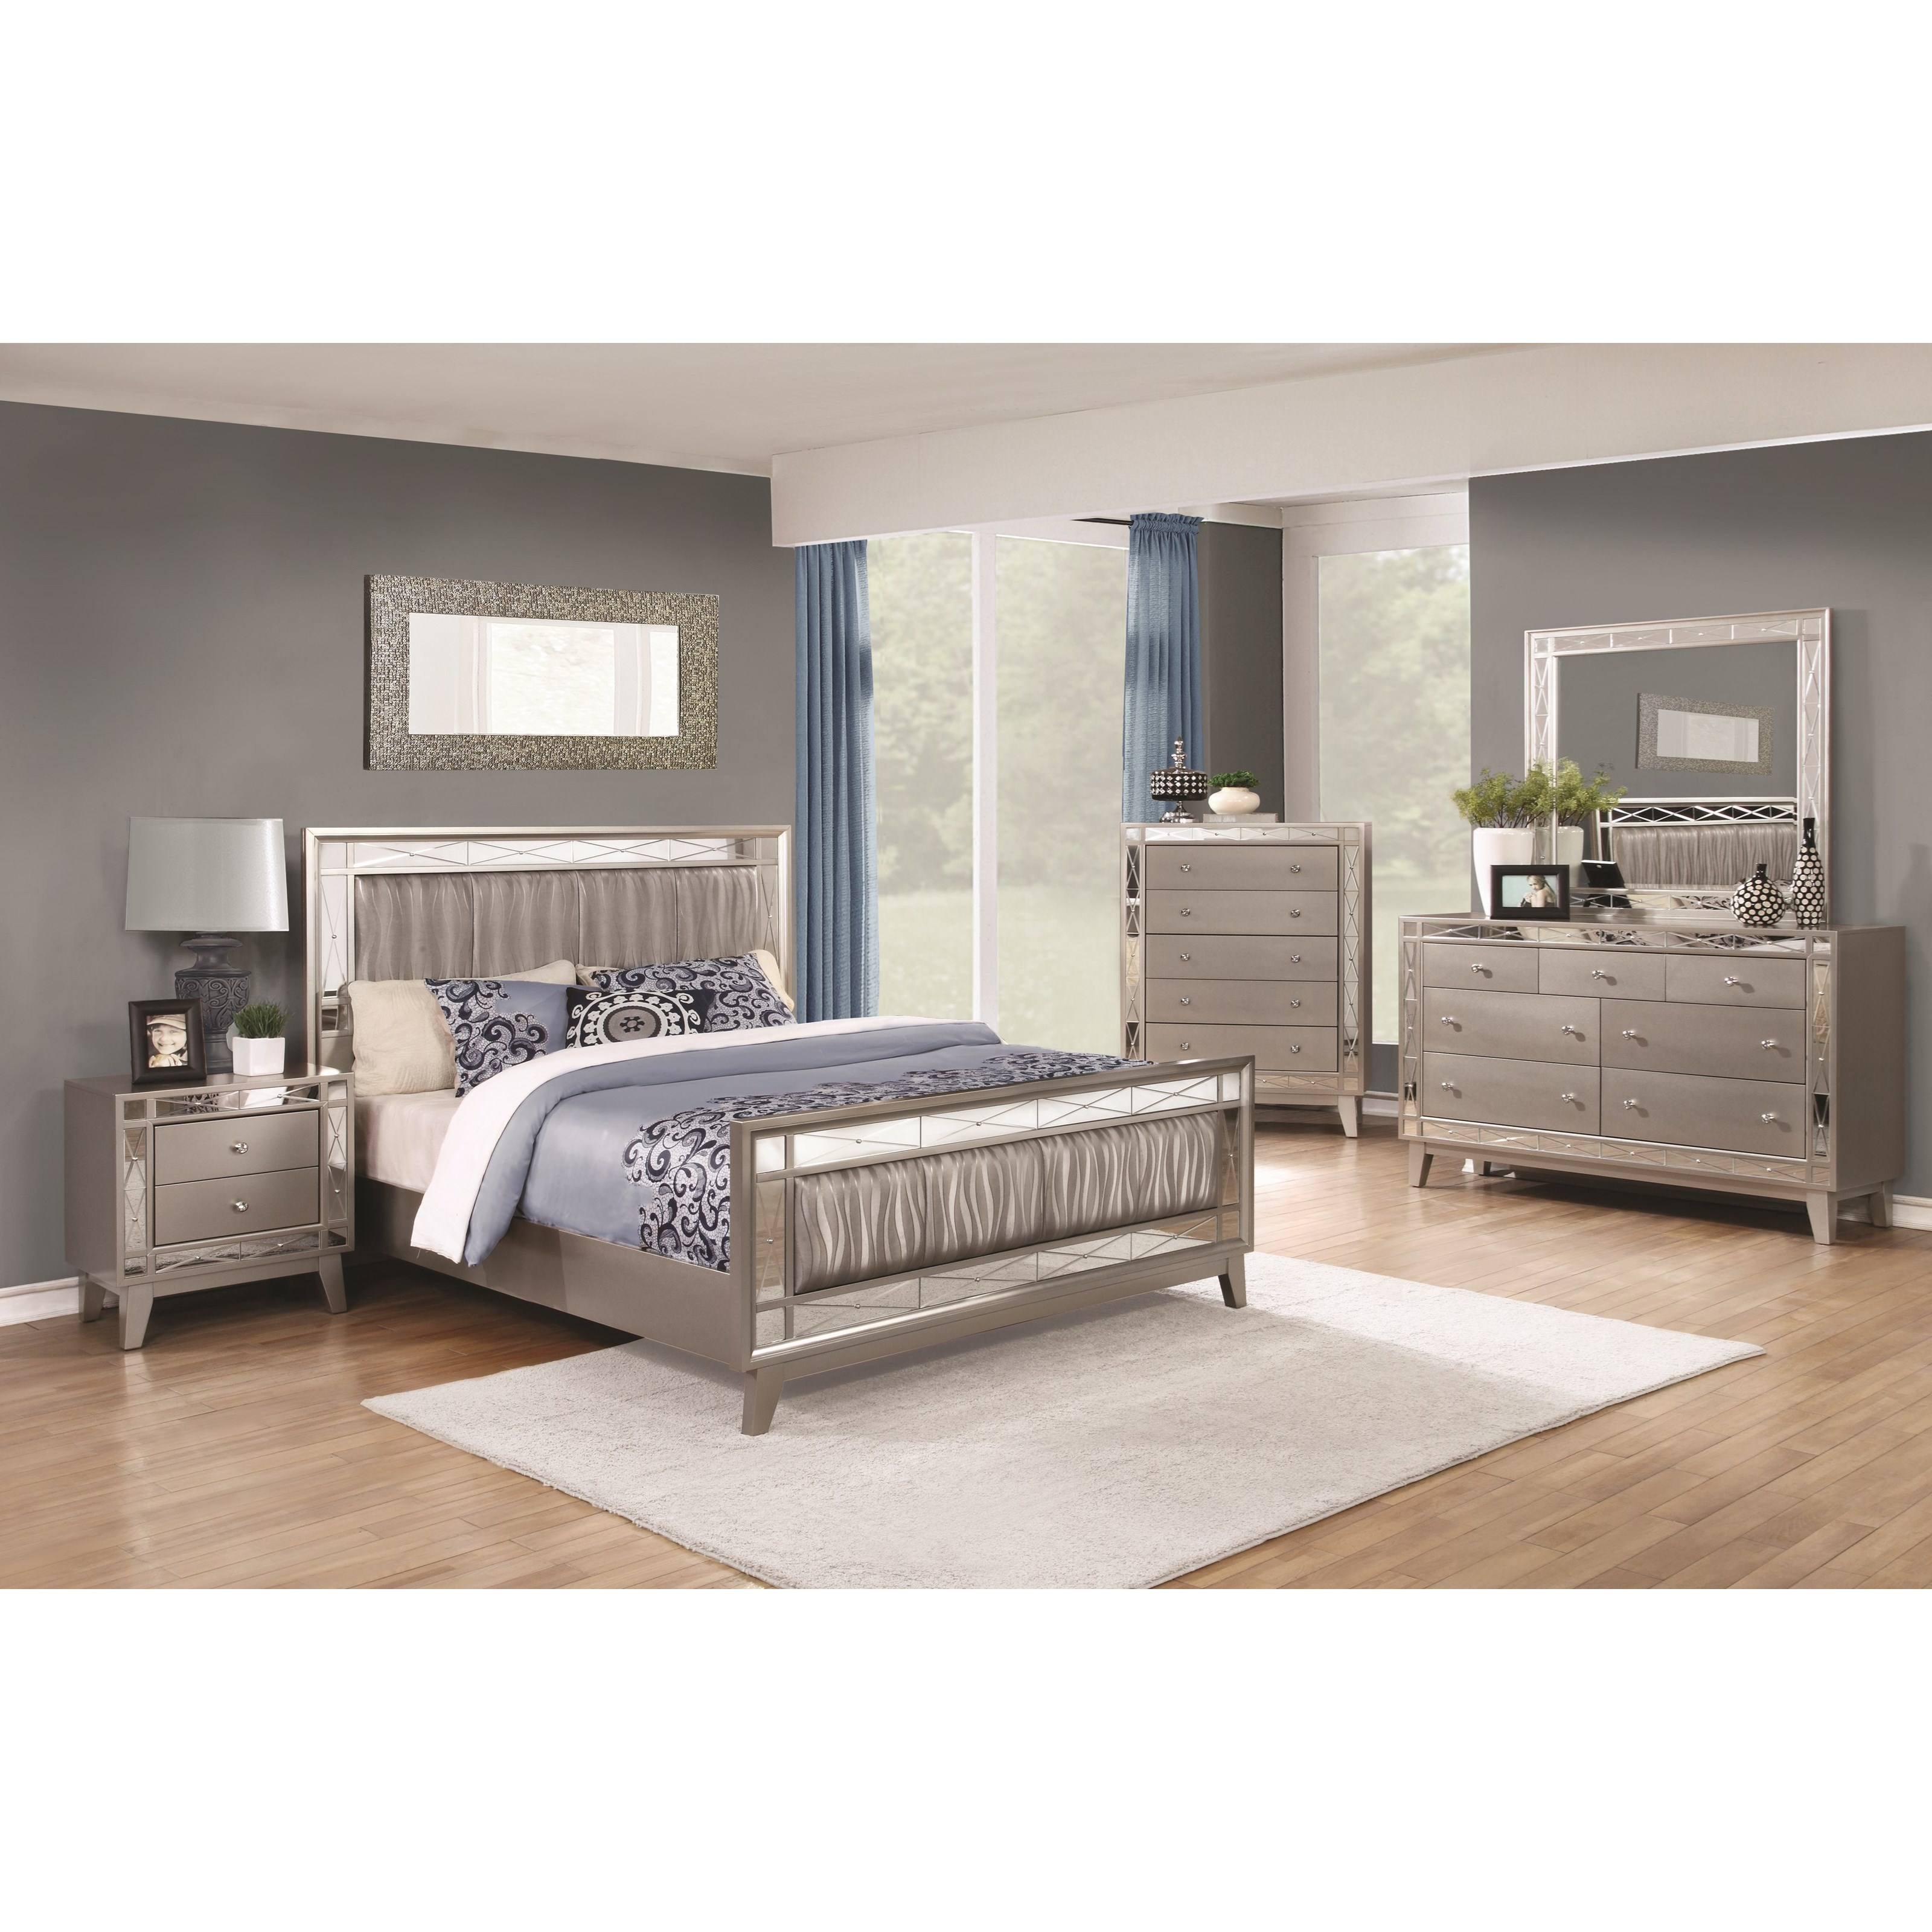 Coaster Leighton King Bedroom Group - Value City Furniture ...